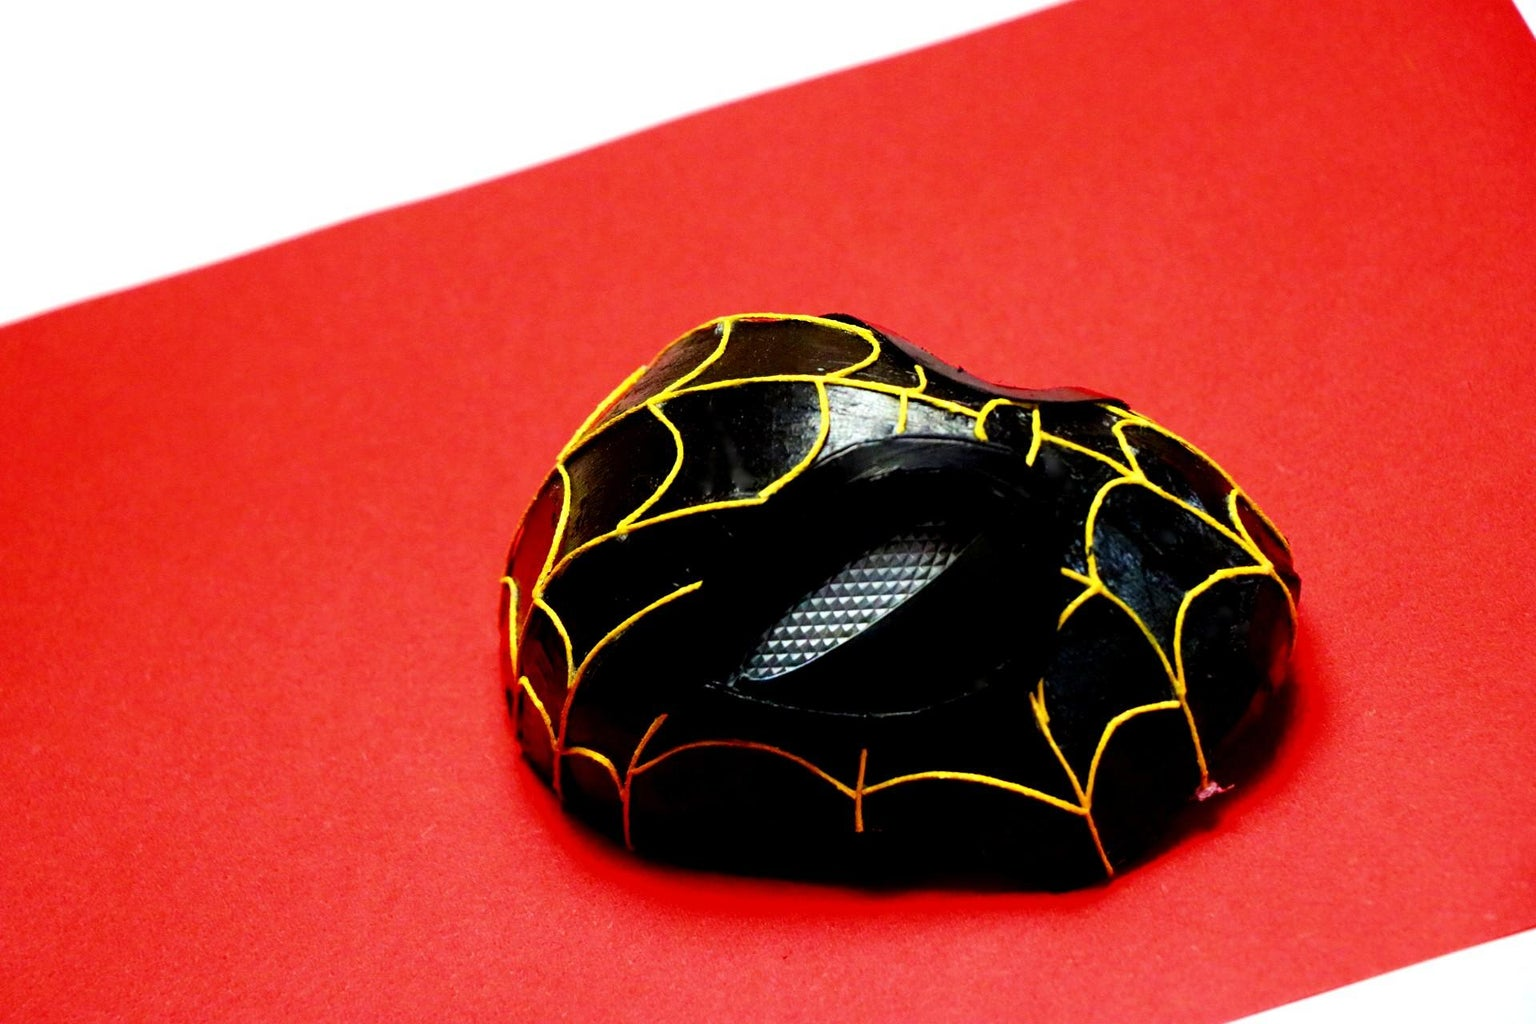 Functional Spiderman Mask From No Way Home With Moving Lens - Gold and Black Mini Version